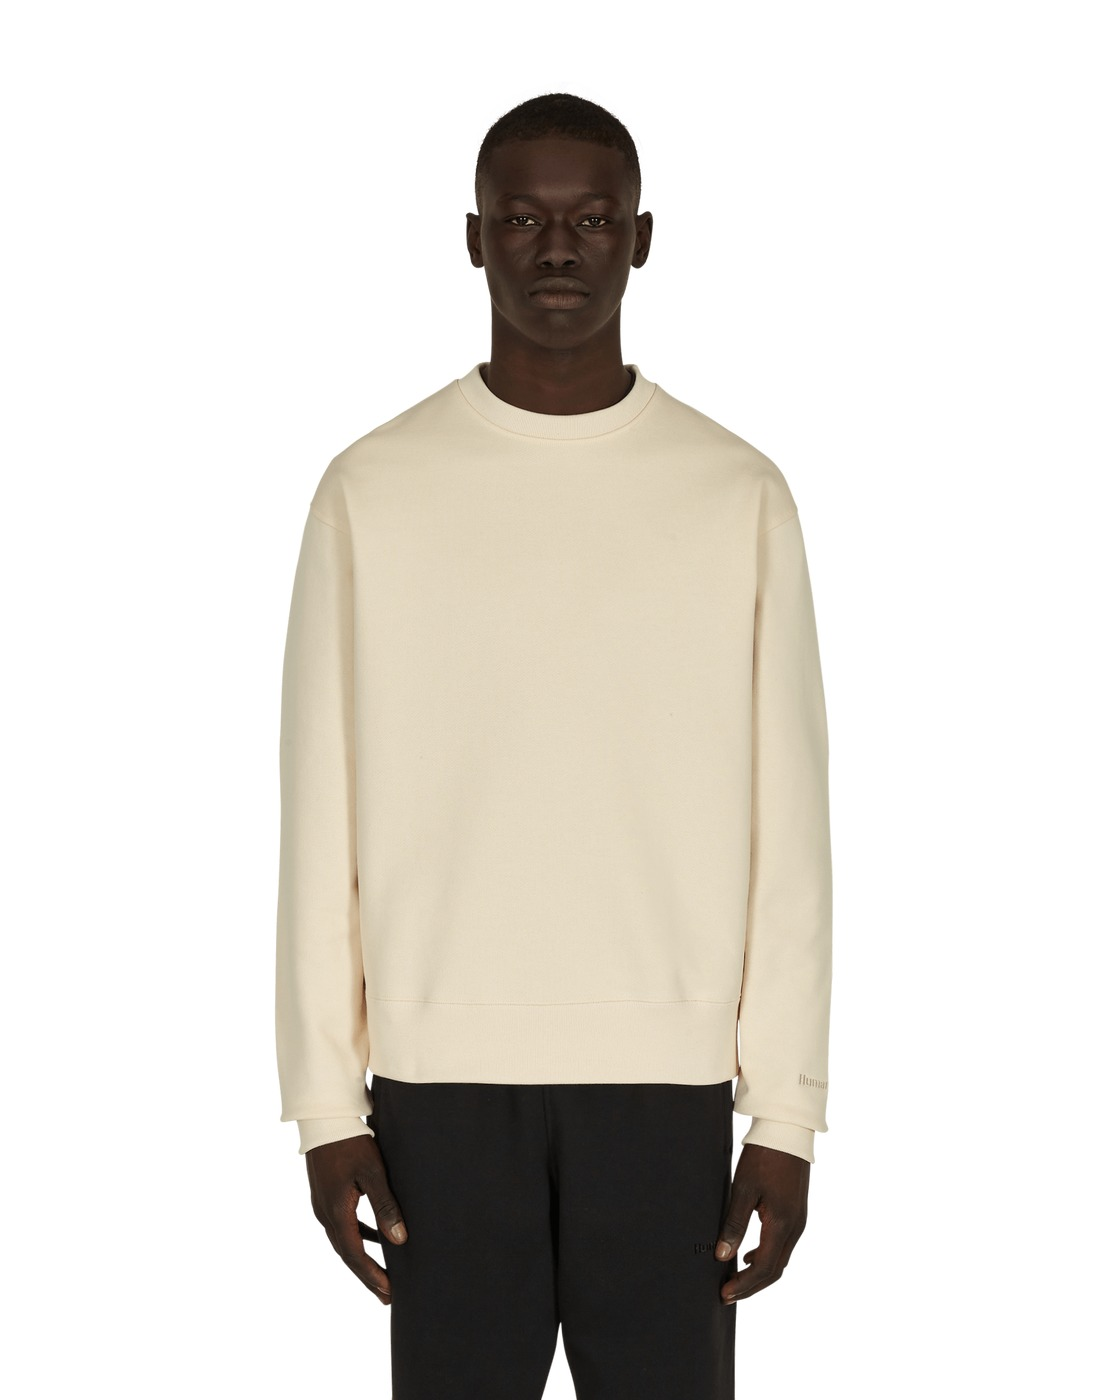 Photo: Adidas Originals Pharrell Williams Basics Crewneck Sweatshirt Ecru Tint